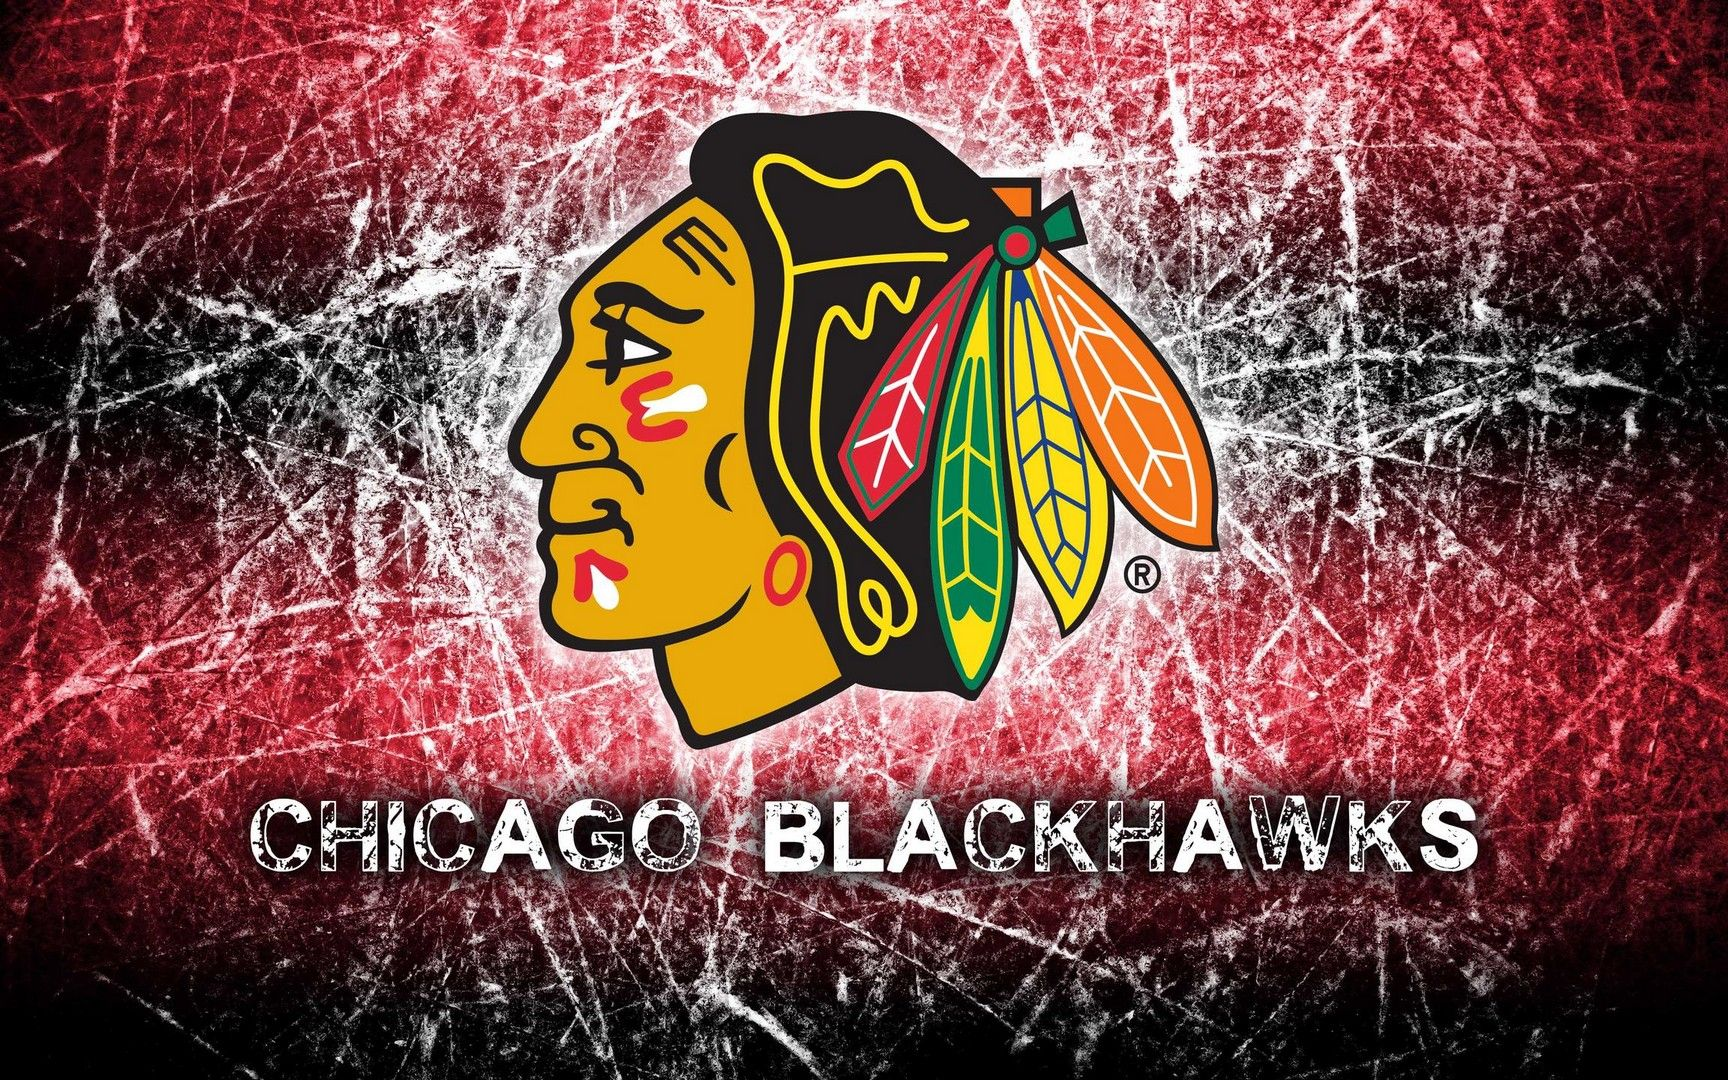 Chicago Blackhawks Wallpaper Chicago Blackhawks Logo Chicago Blackhawks Chicago Blackhawks Wallpaper